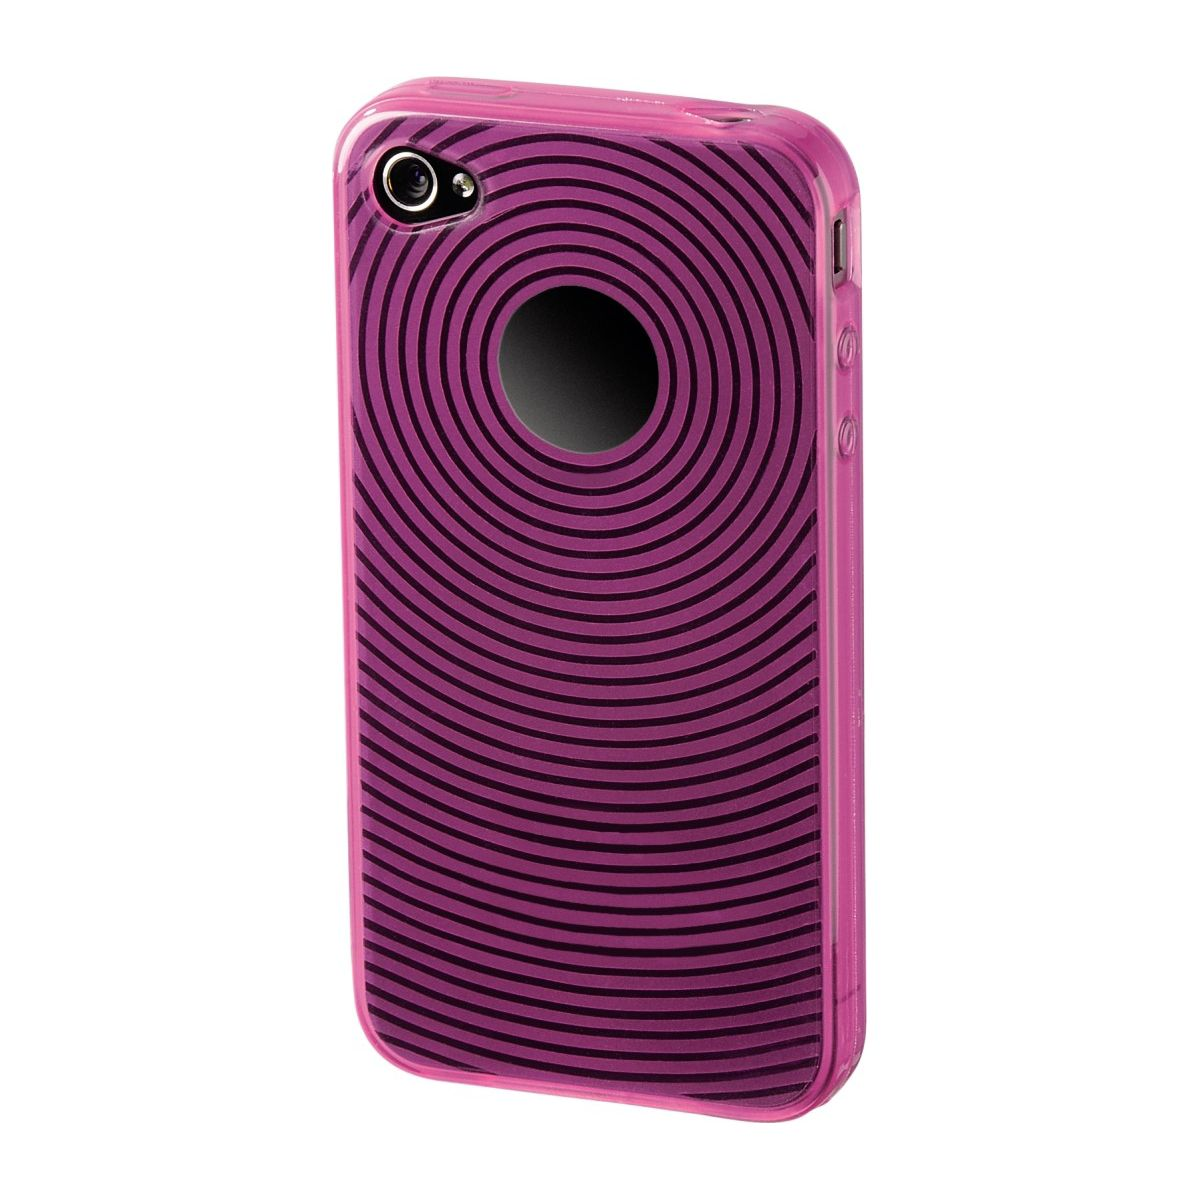 Coque HAMA 107108 COQUE SPIRALE ROSE IPHONE 4/4S